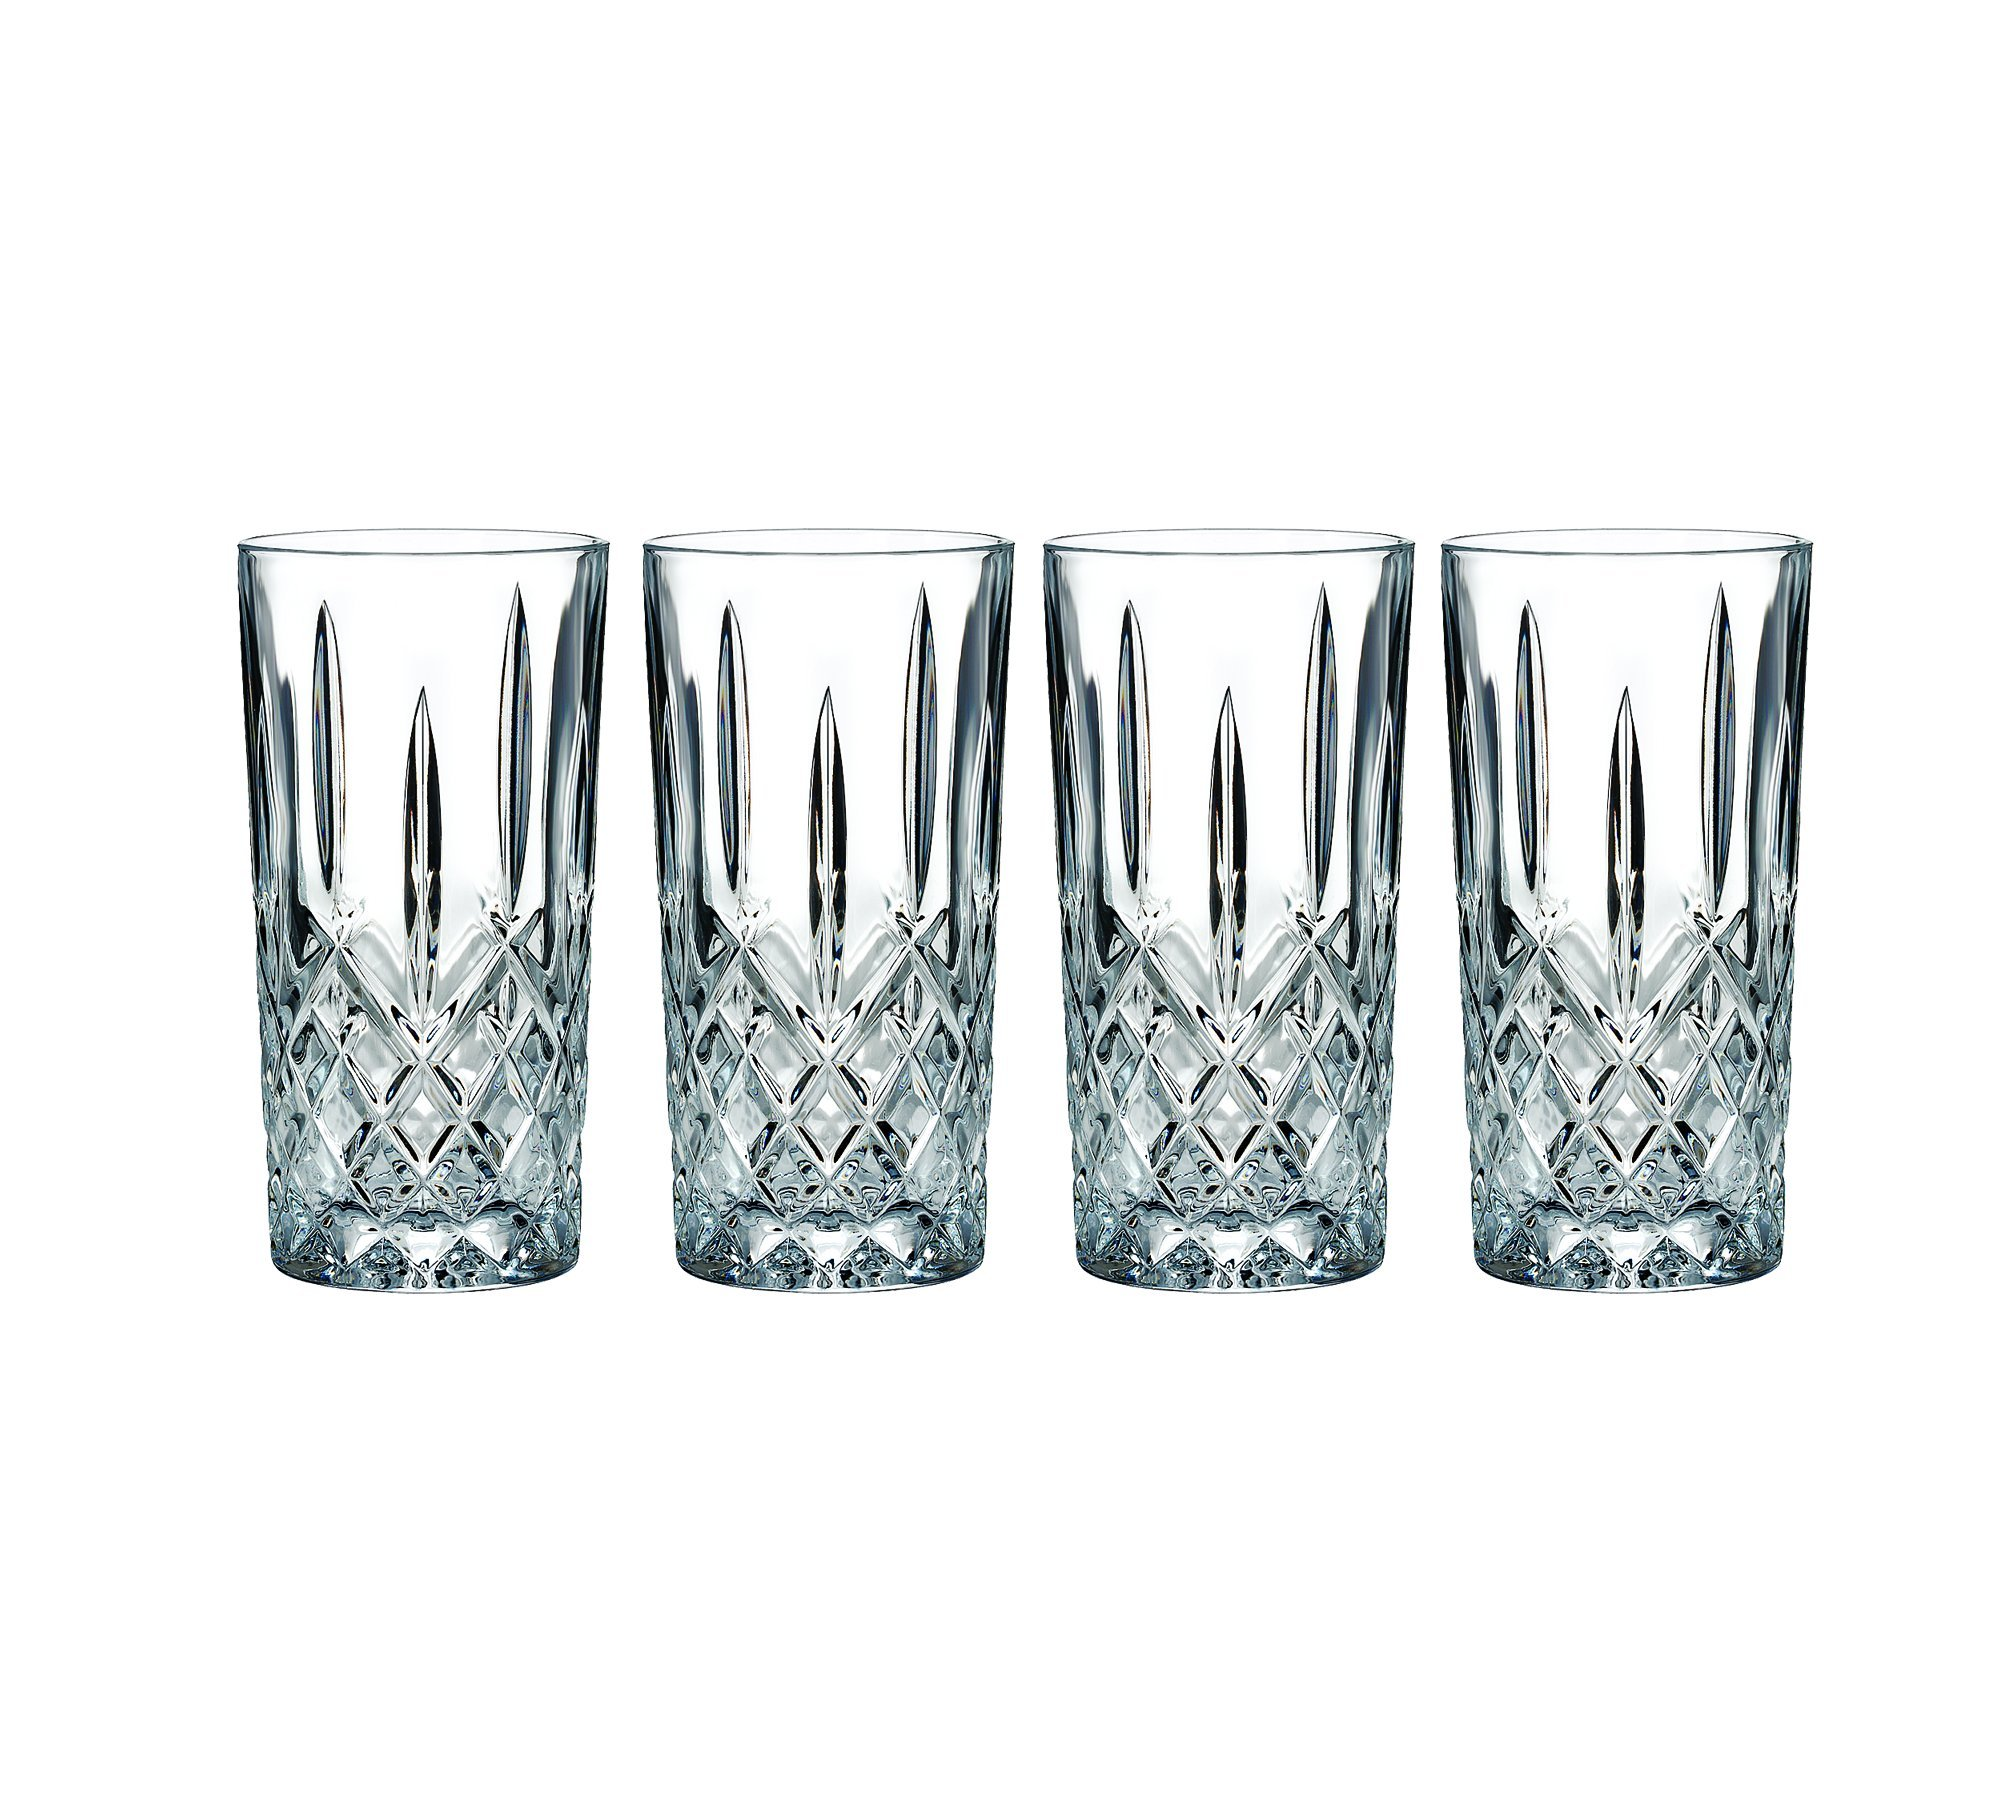 Marquis by Waterford 165119 Markham Hiball Collins Glasses, Set of 4